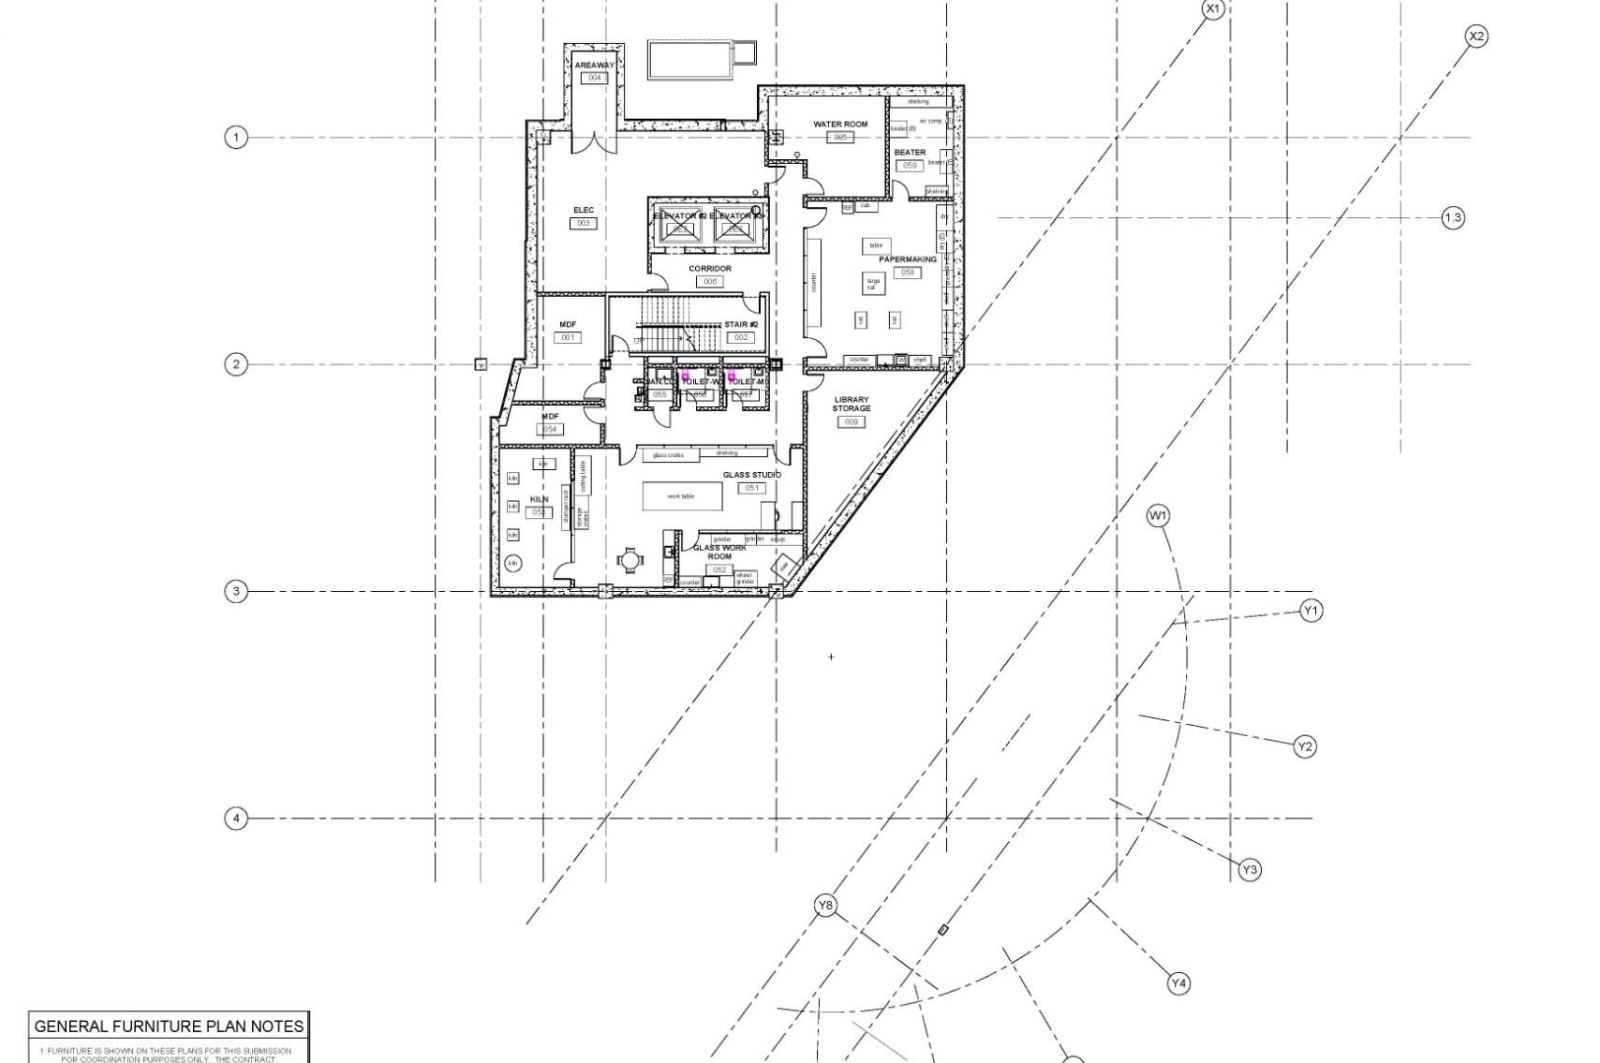 Silver Spring Library - Basement Floor Plan